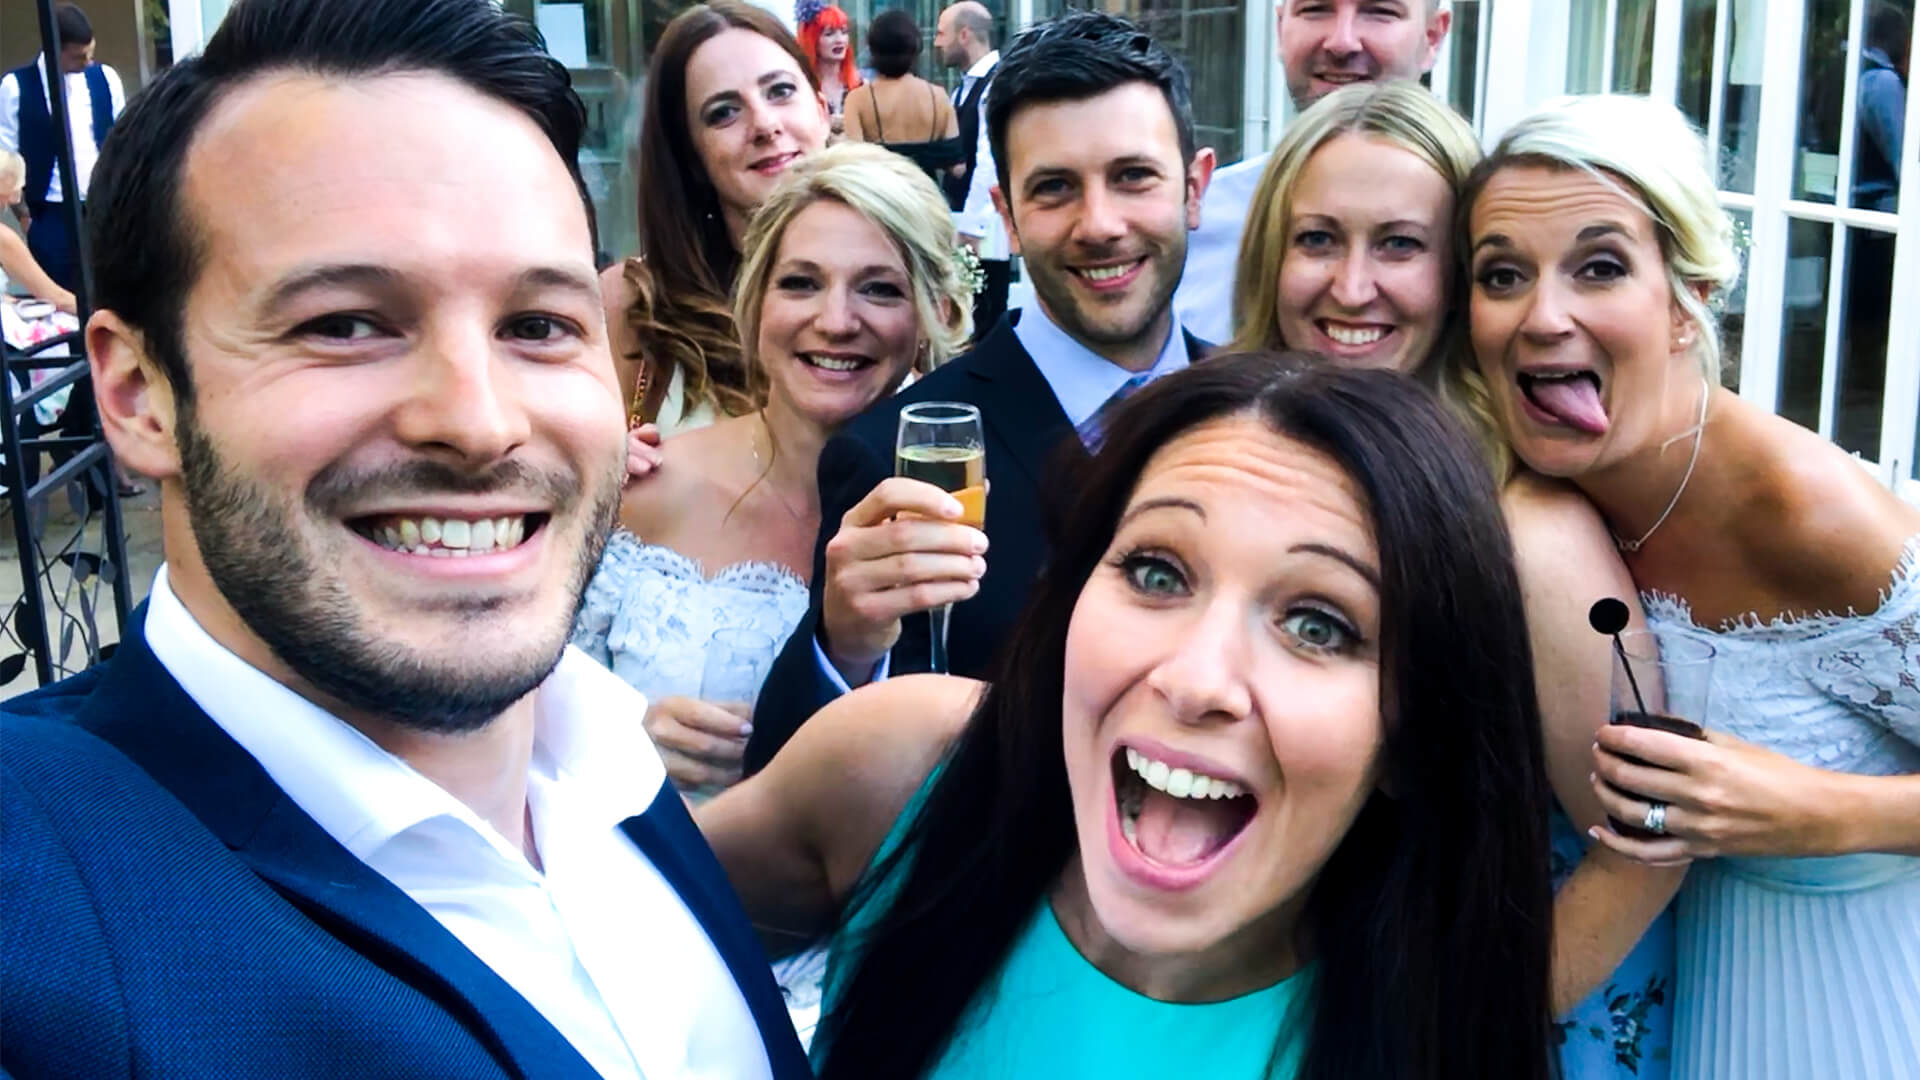 Aaron Calvert Manchester Wedding Magician taking selfie with guests during wedding entertainment